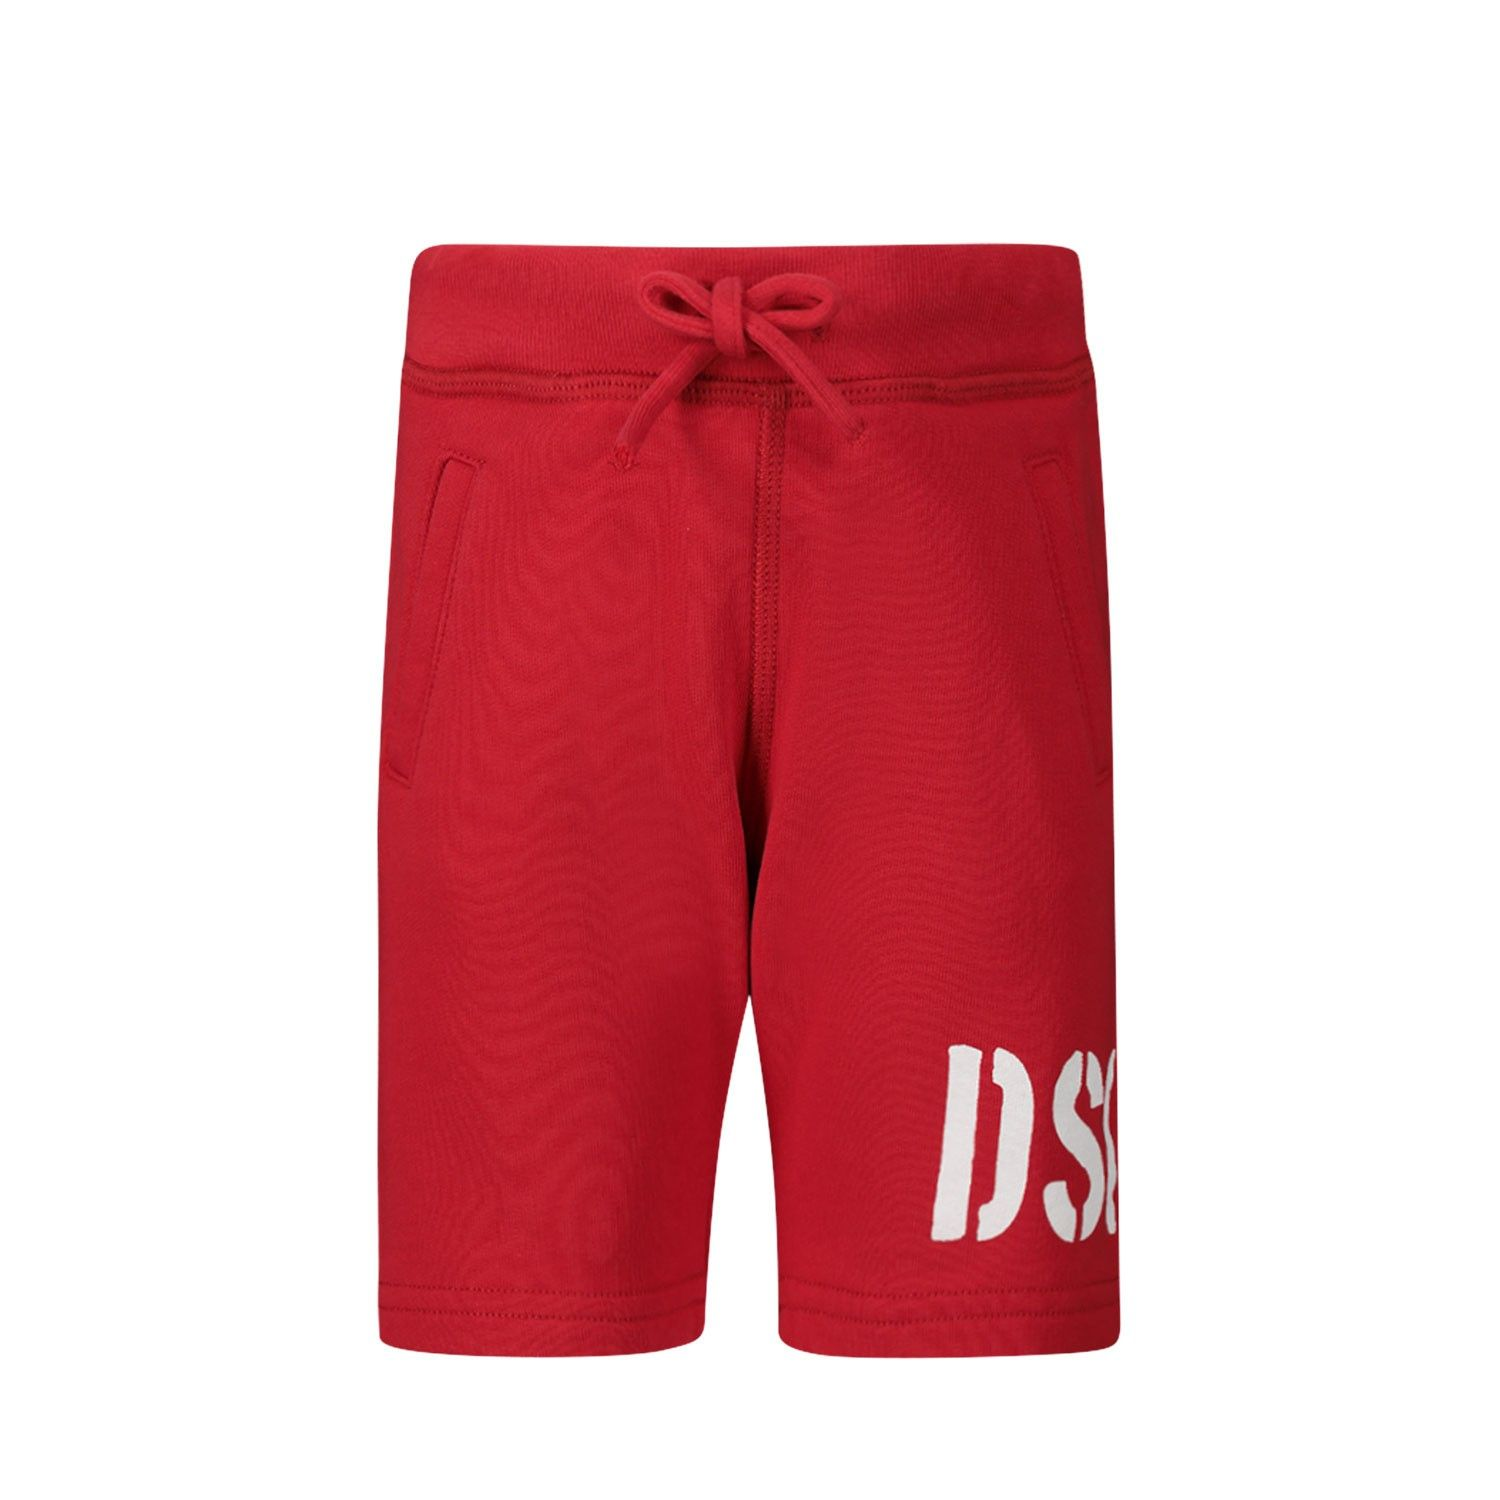 Picture of Dsquared2 DQ04F9 baby shorts red